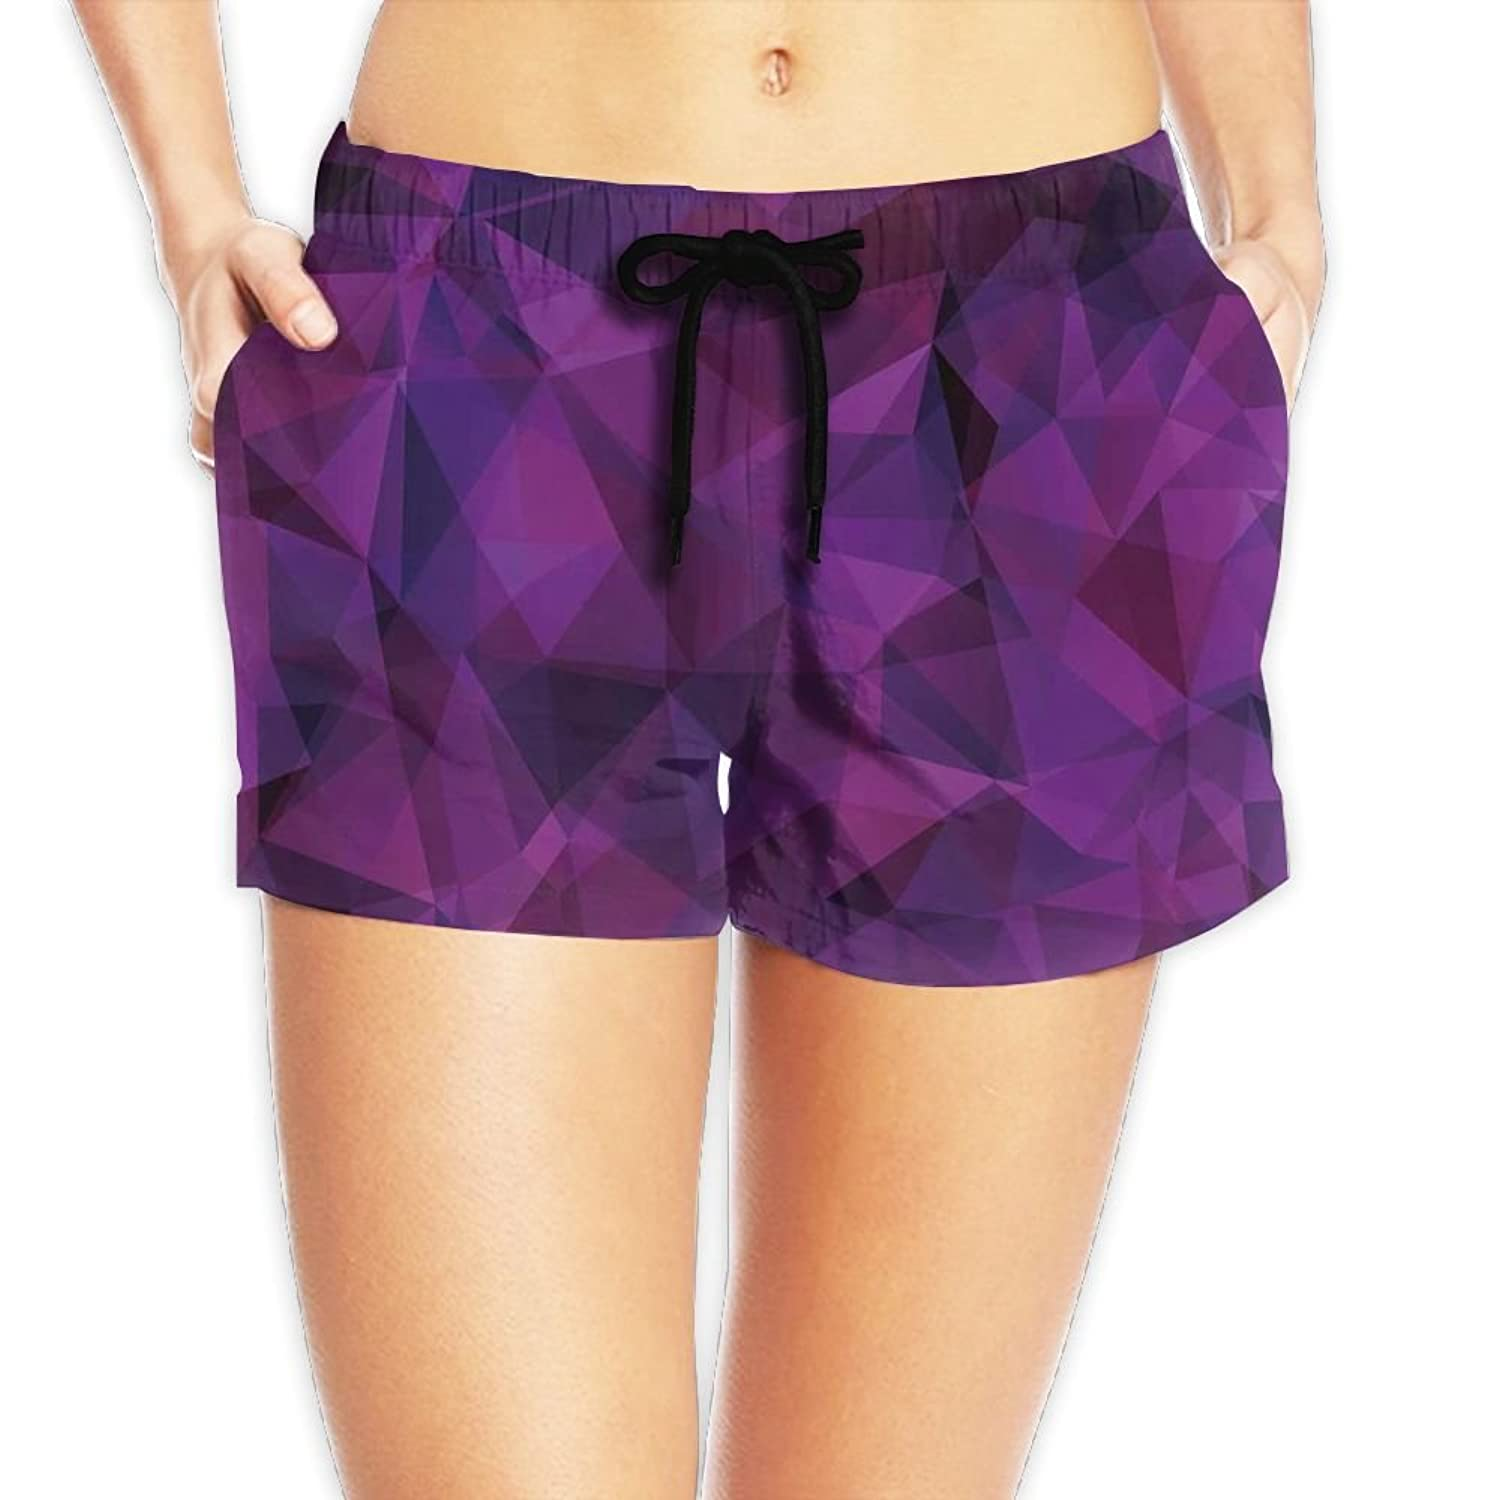 Coldcool Woman's Broken Glass Inspired Geometric Triangle Abstract Shapes Stretchable Board Shorts